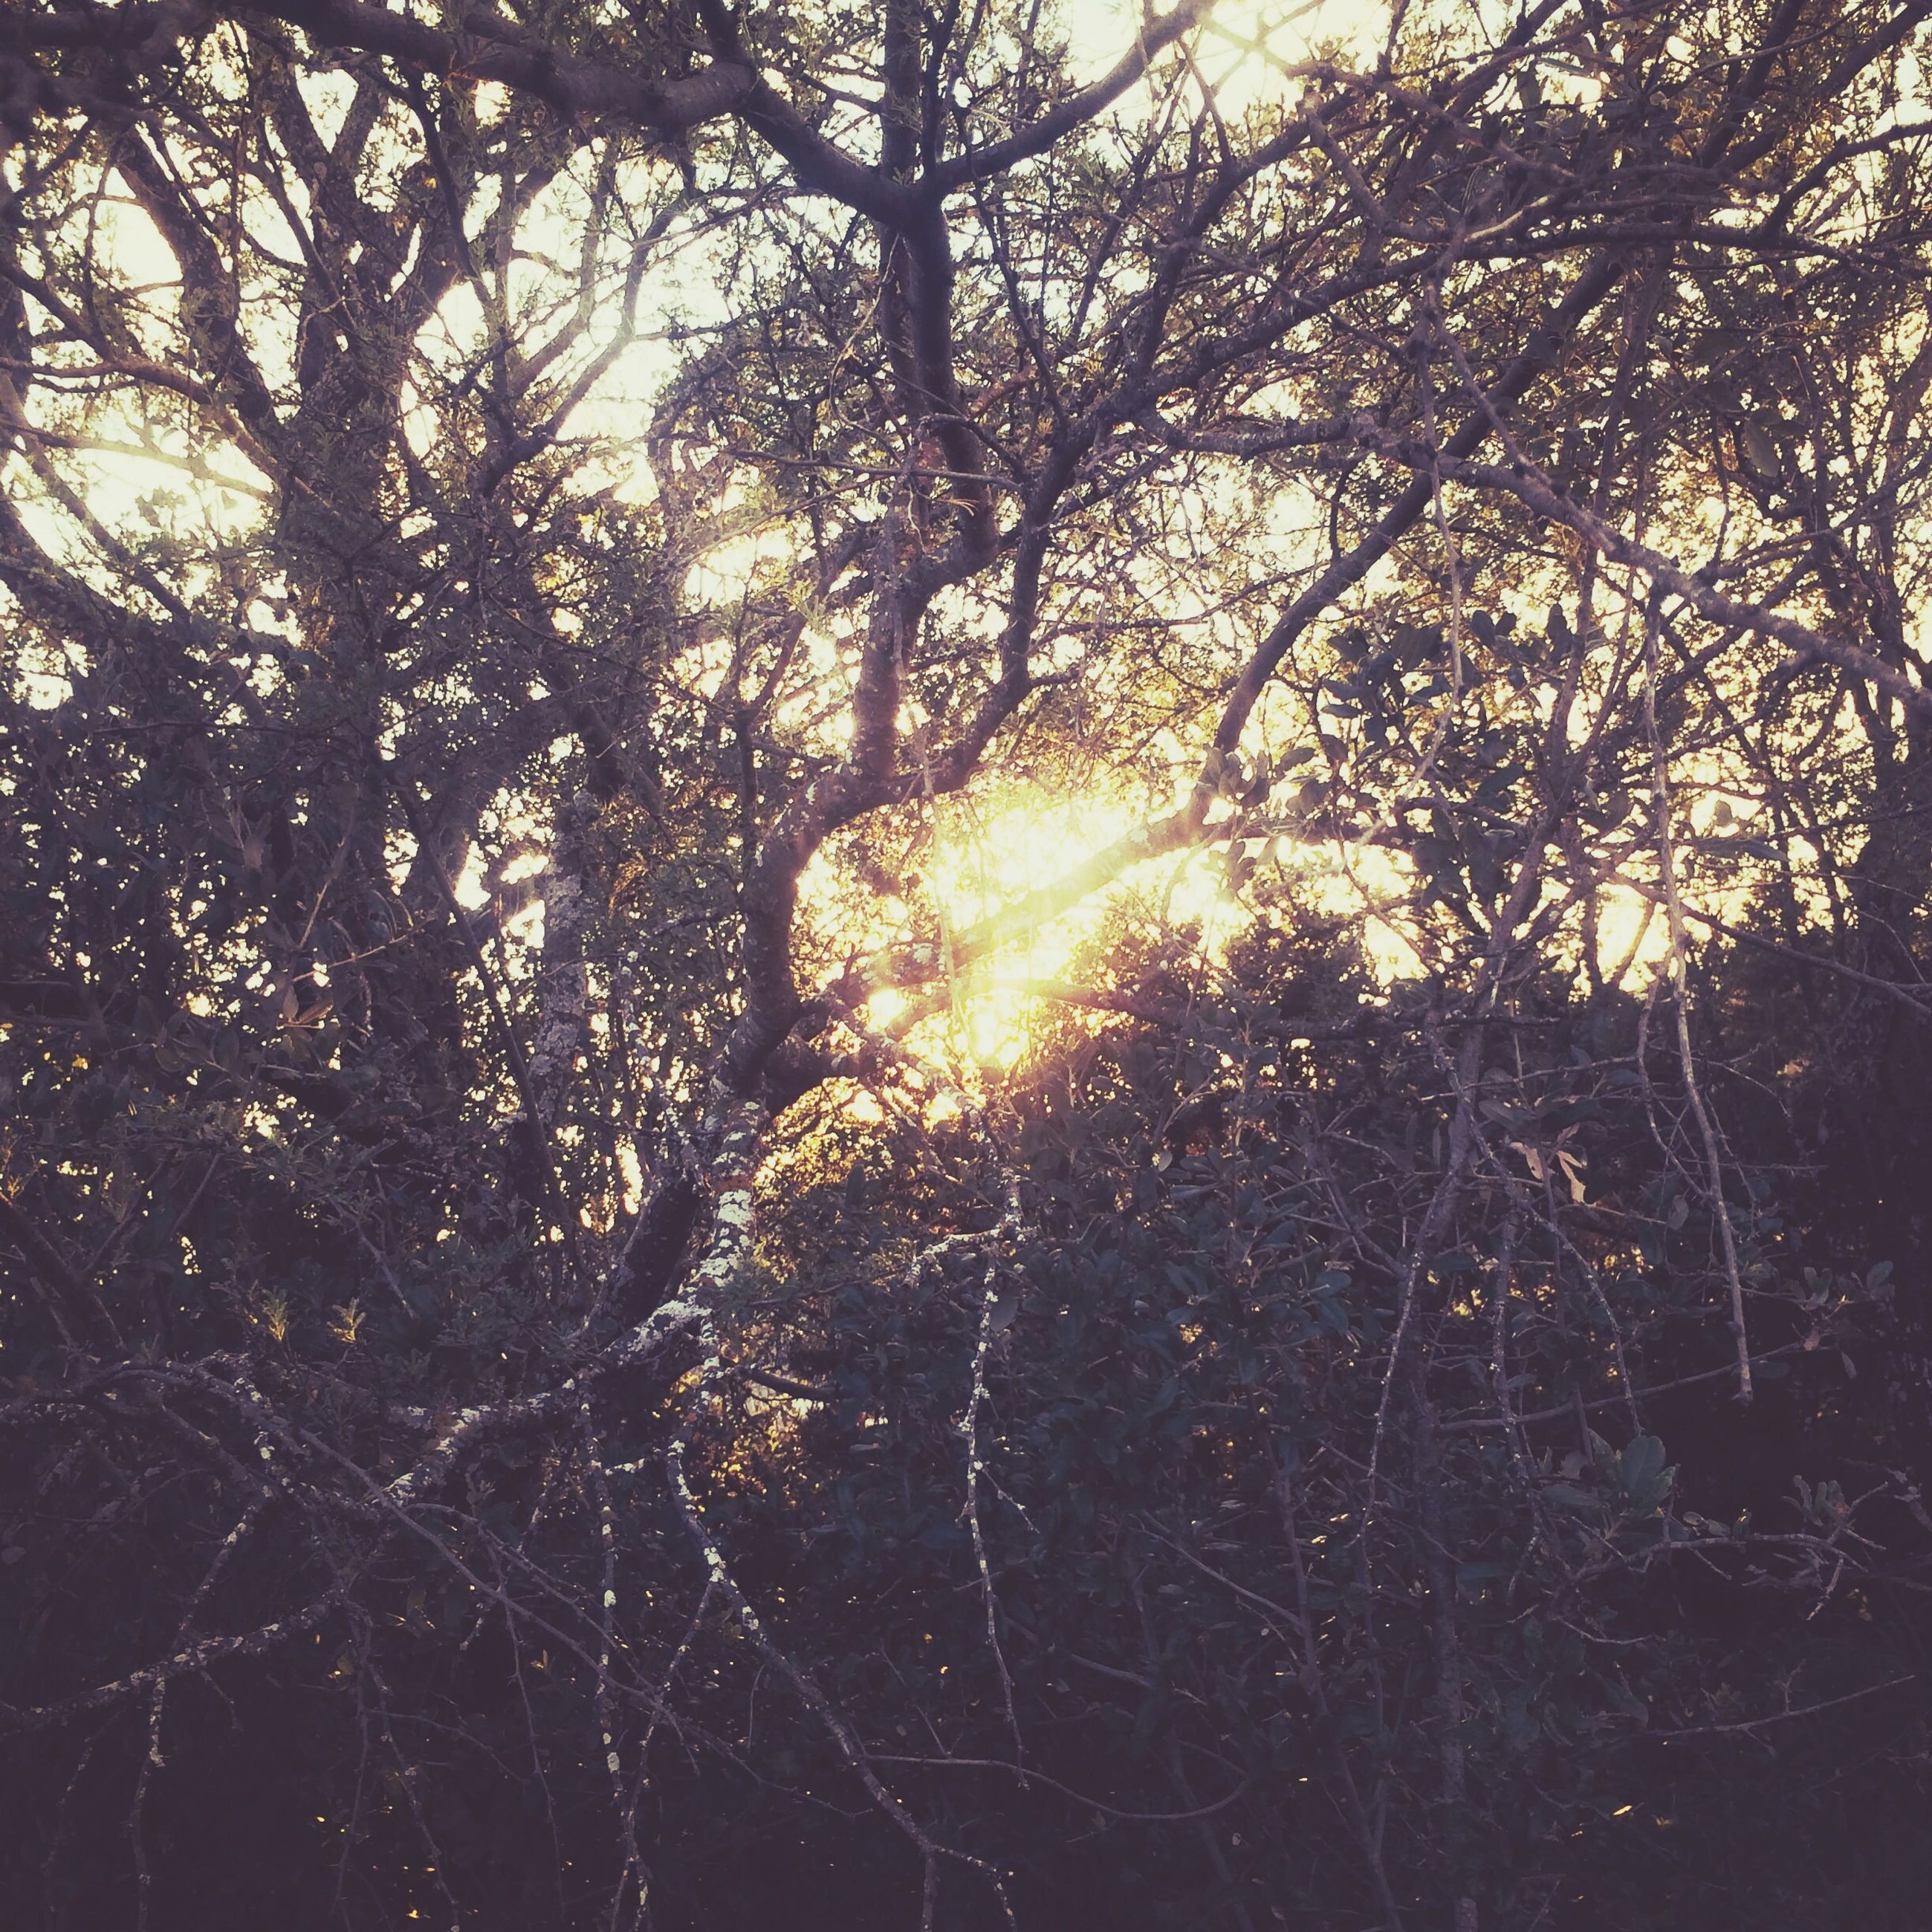 tree, sun, tranquility, sunlight, nature, branch, silhouette, beauty in nature, sunset, growth, sunbeam, tranquil scene, scenics, forest, low angle view, back lit, outdoors, lens flare, no people, sky